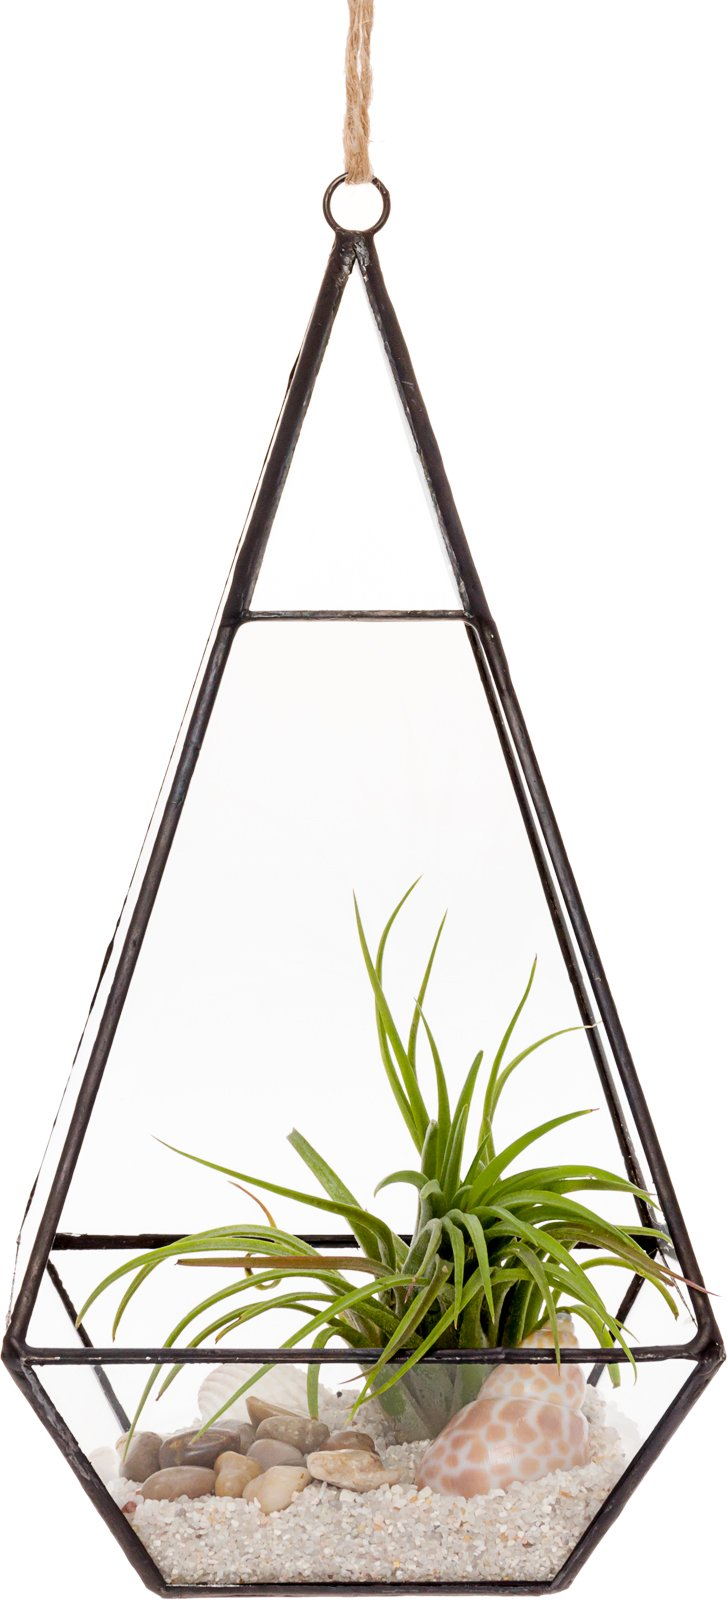 Mindful Design Glass Terrarium - Geometric Large Diamond Desktop Garden Planter (Black) by Mindful Design